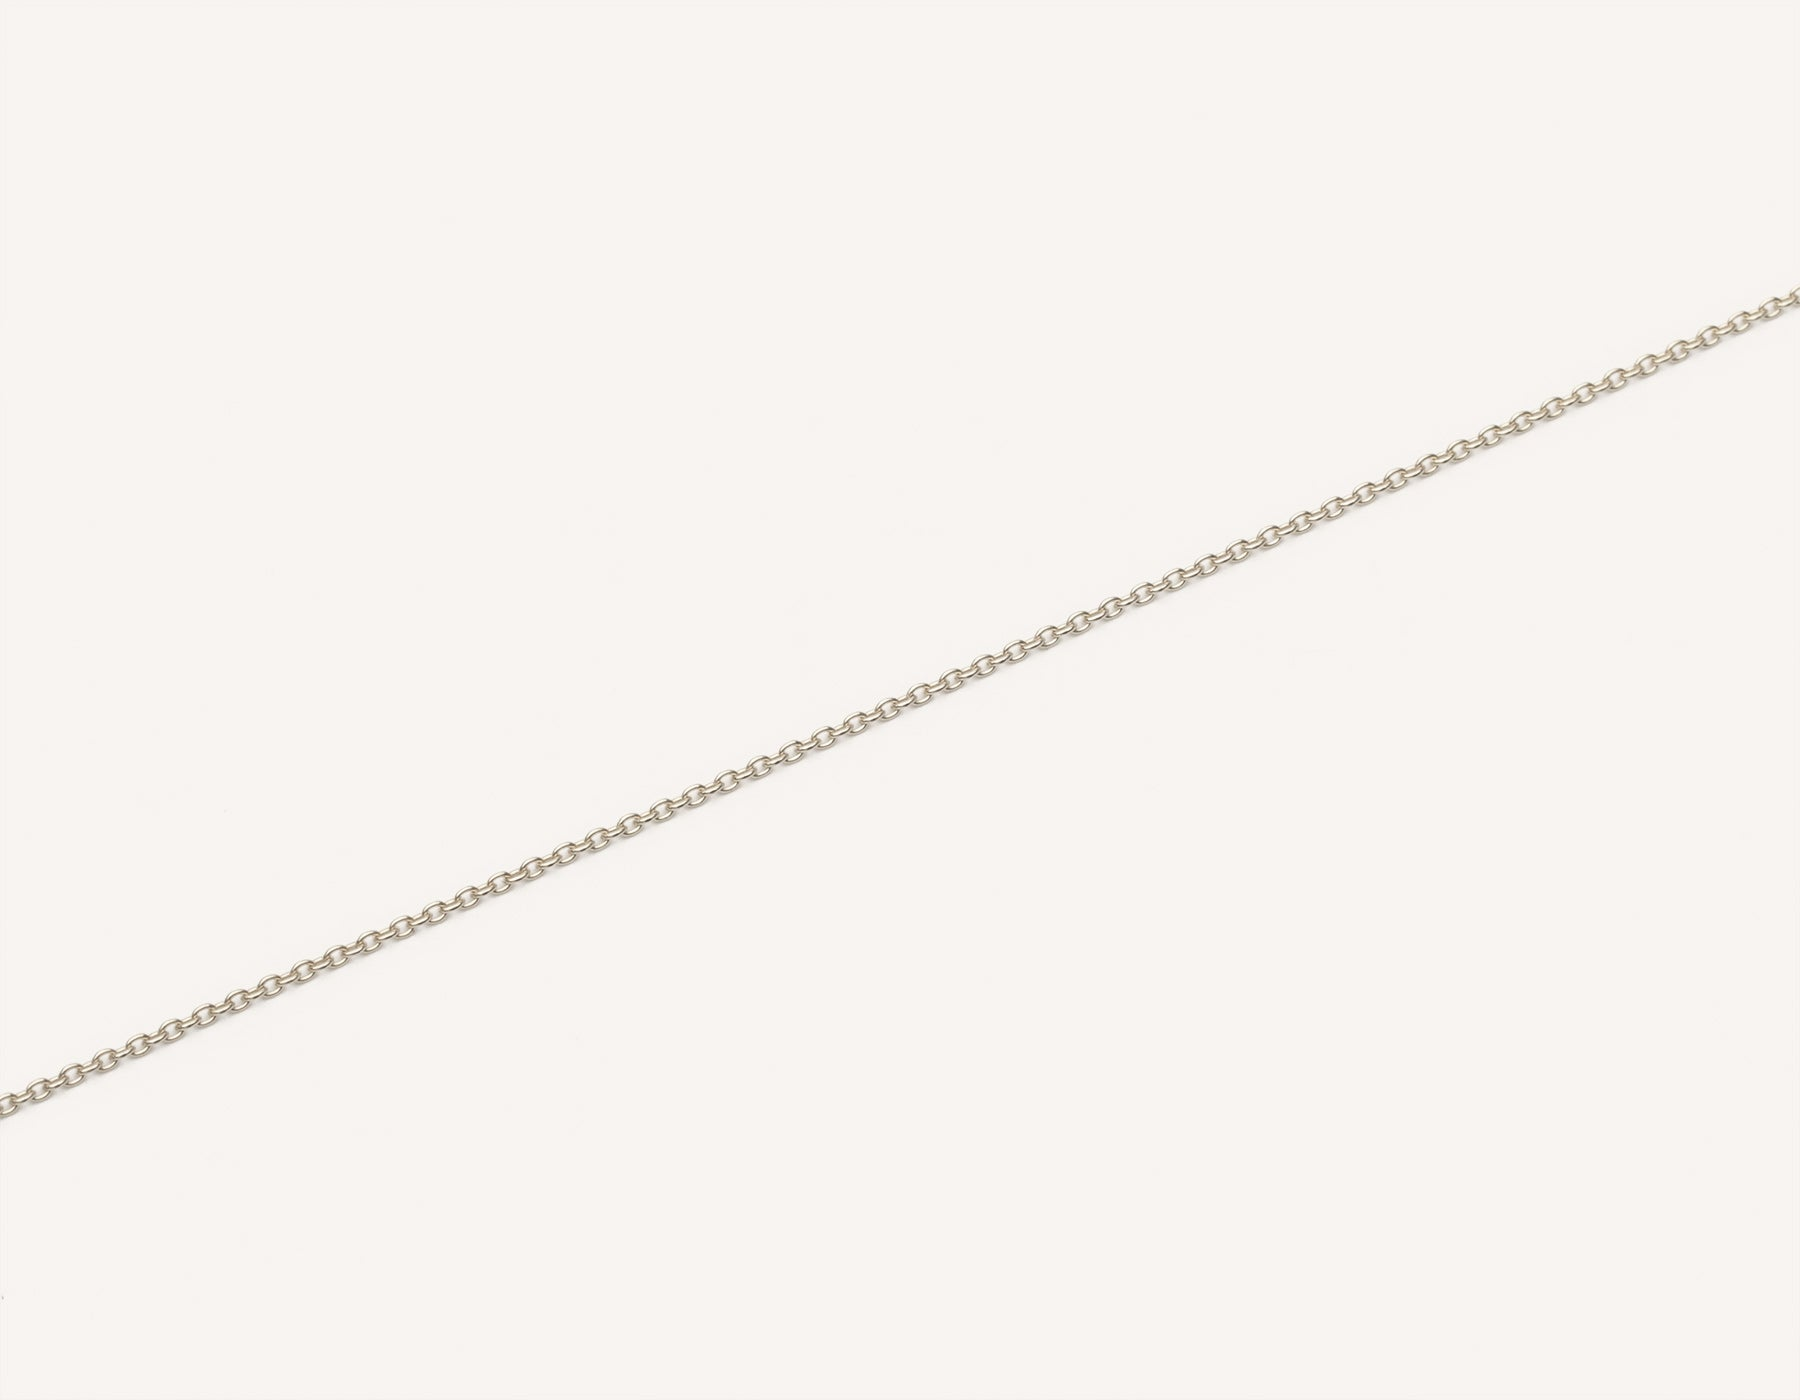 Vrai and oro simple classic 14k solid gold oval link bracelet delicate, 14K White Gold